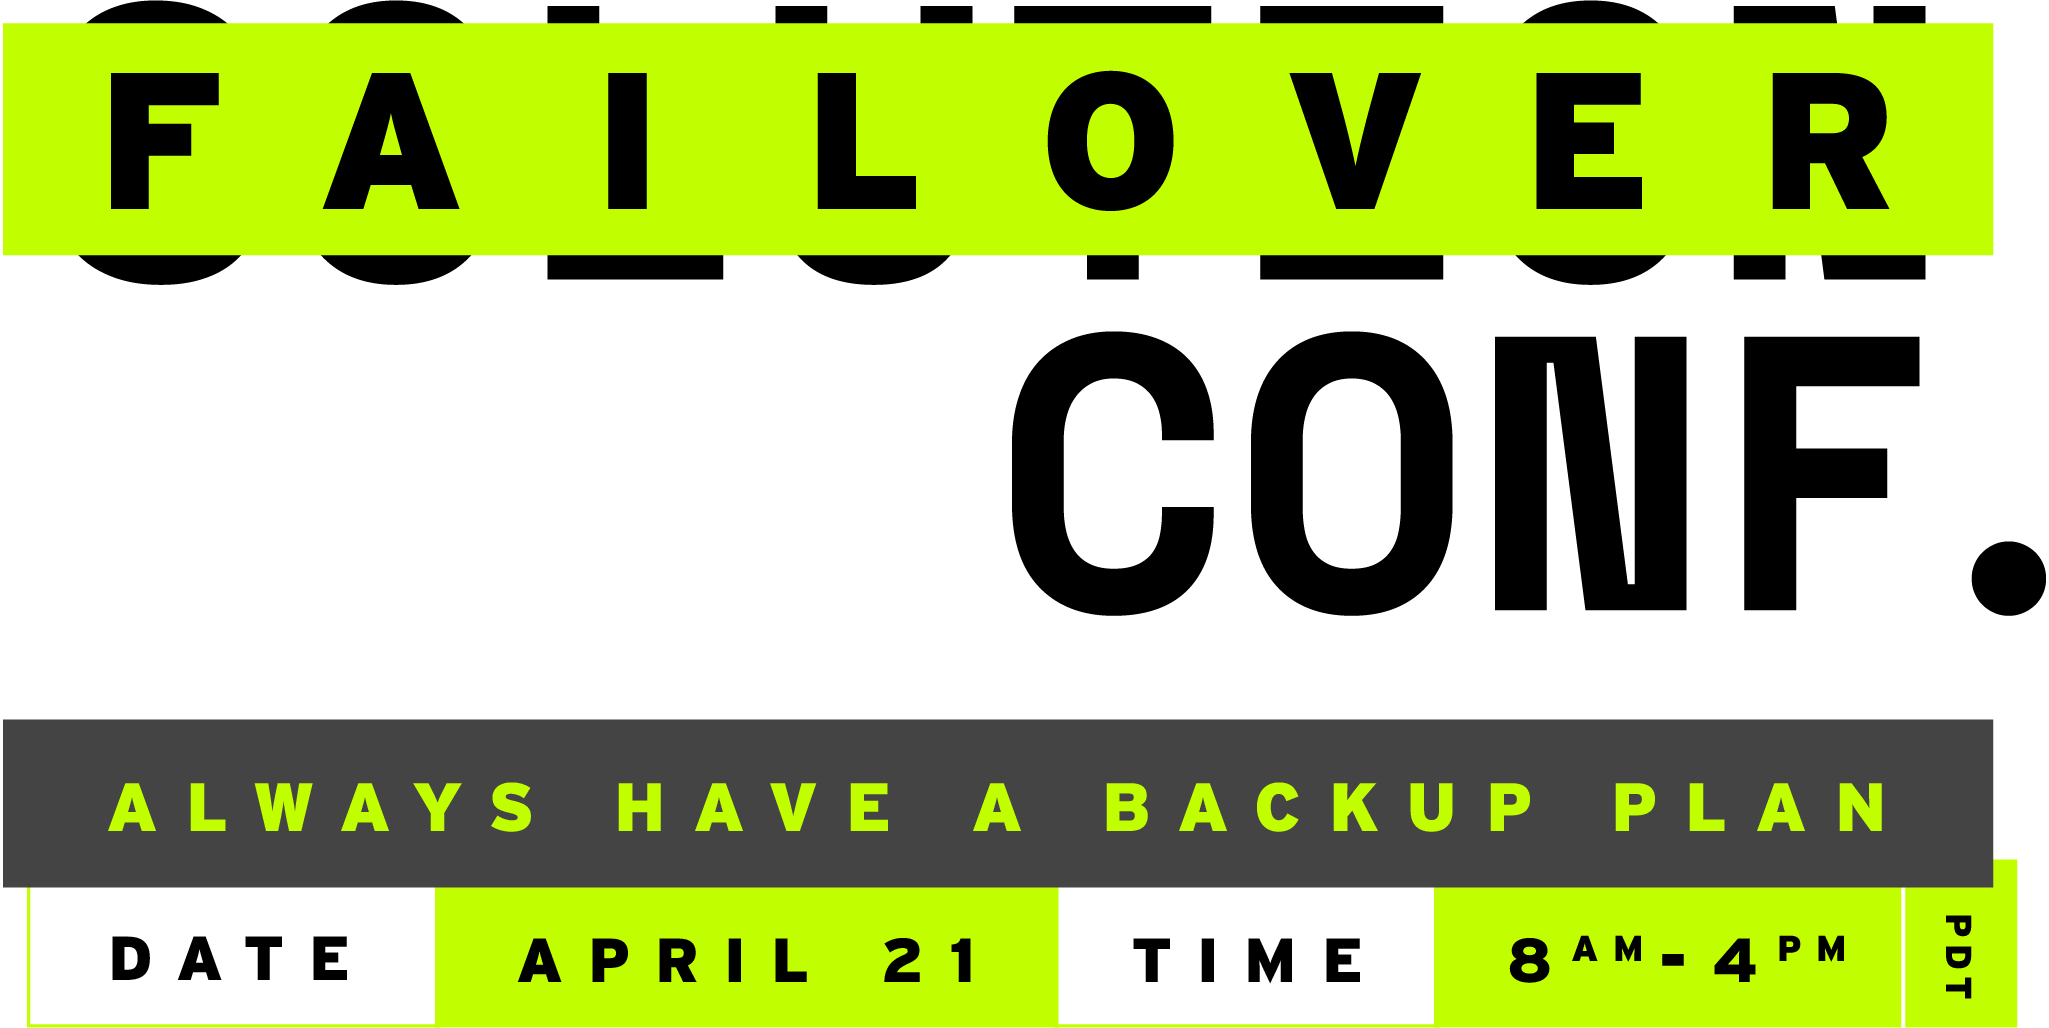 Failover Conf logo with date: April 21, 2020 from 8am to 4pm PDT